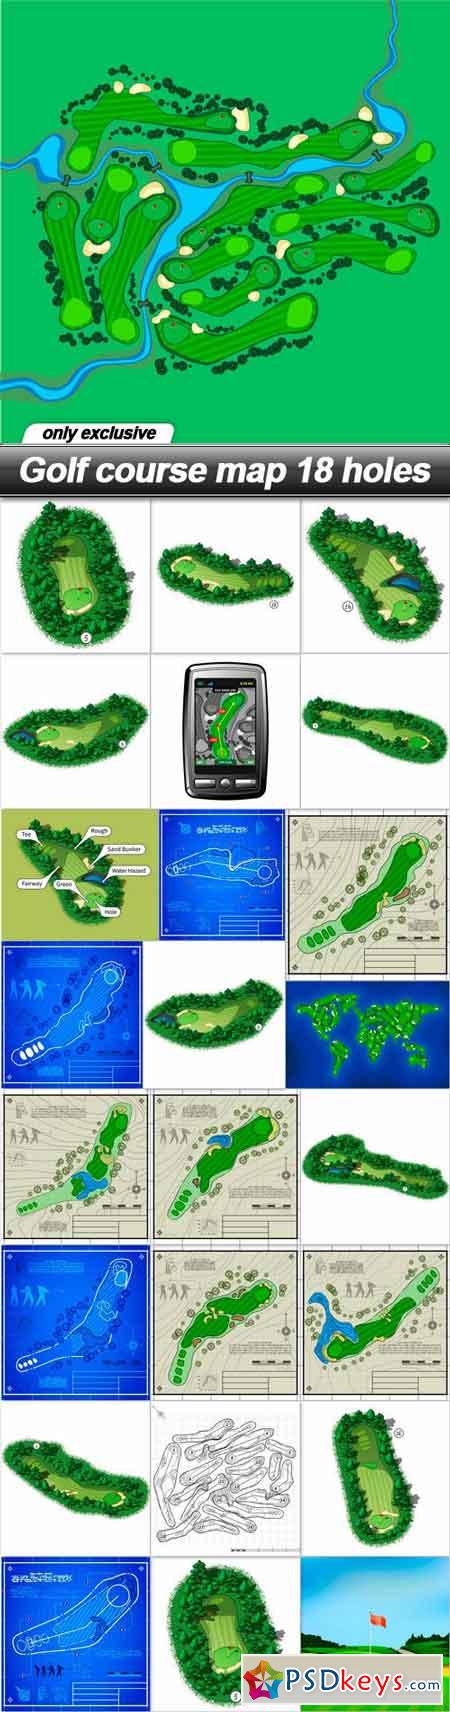 Golf course map 18 holes - 25 EPS